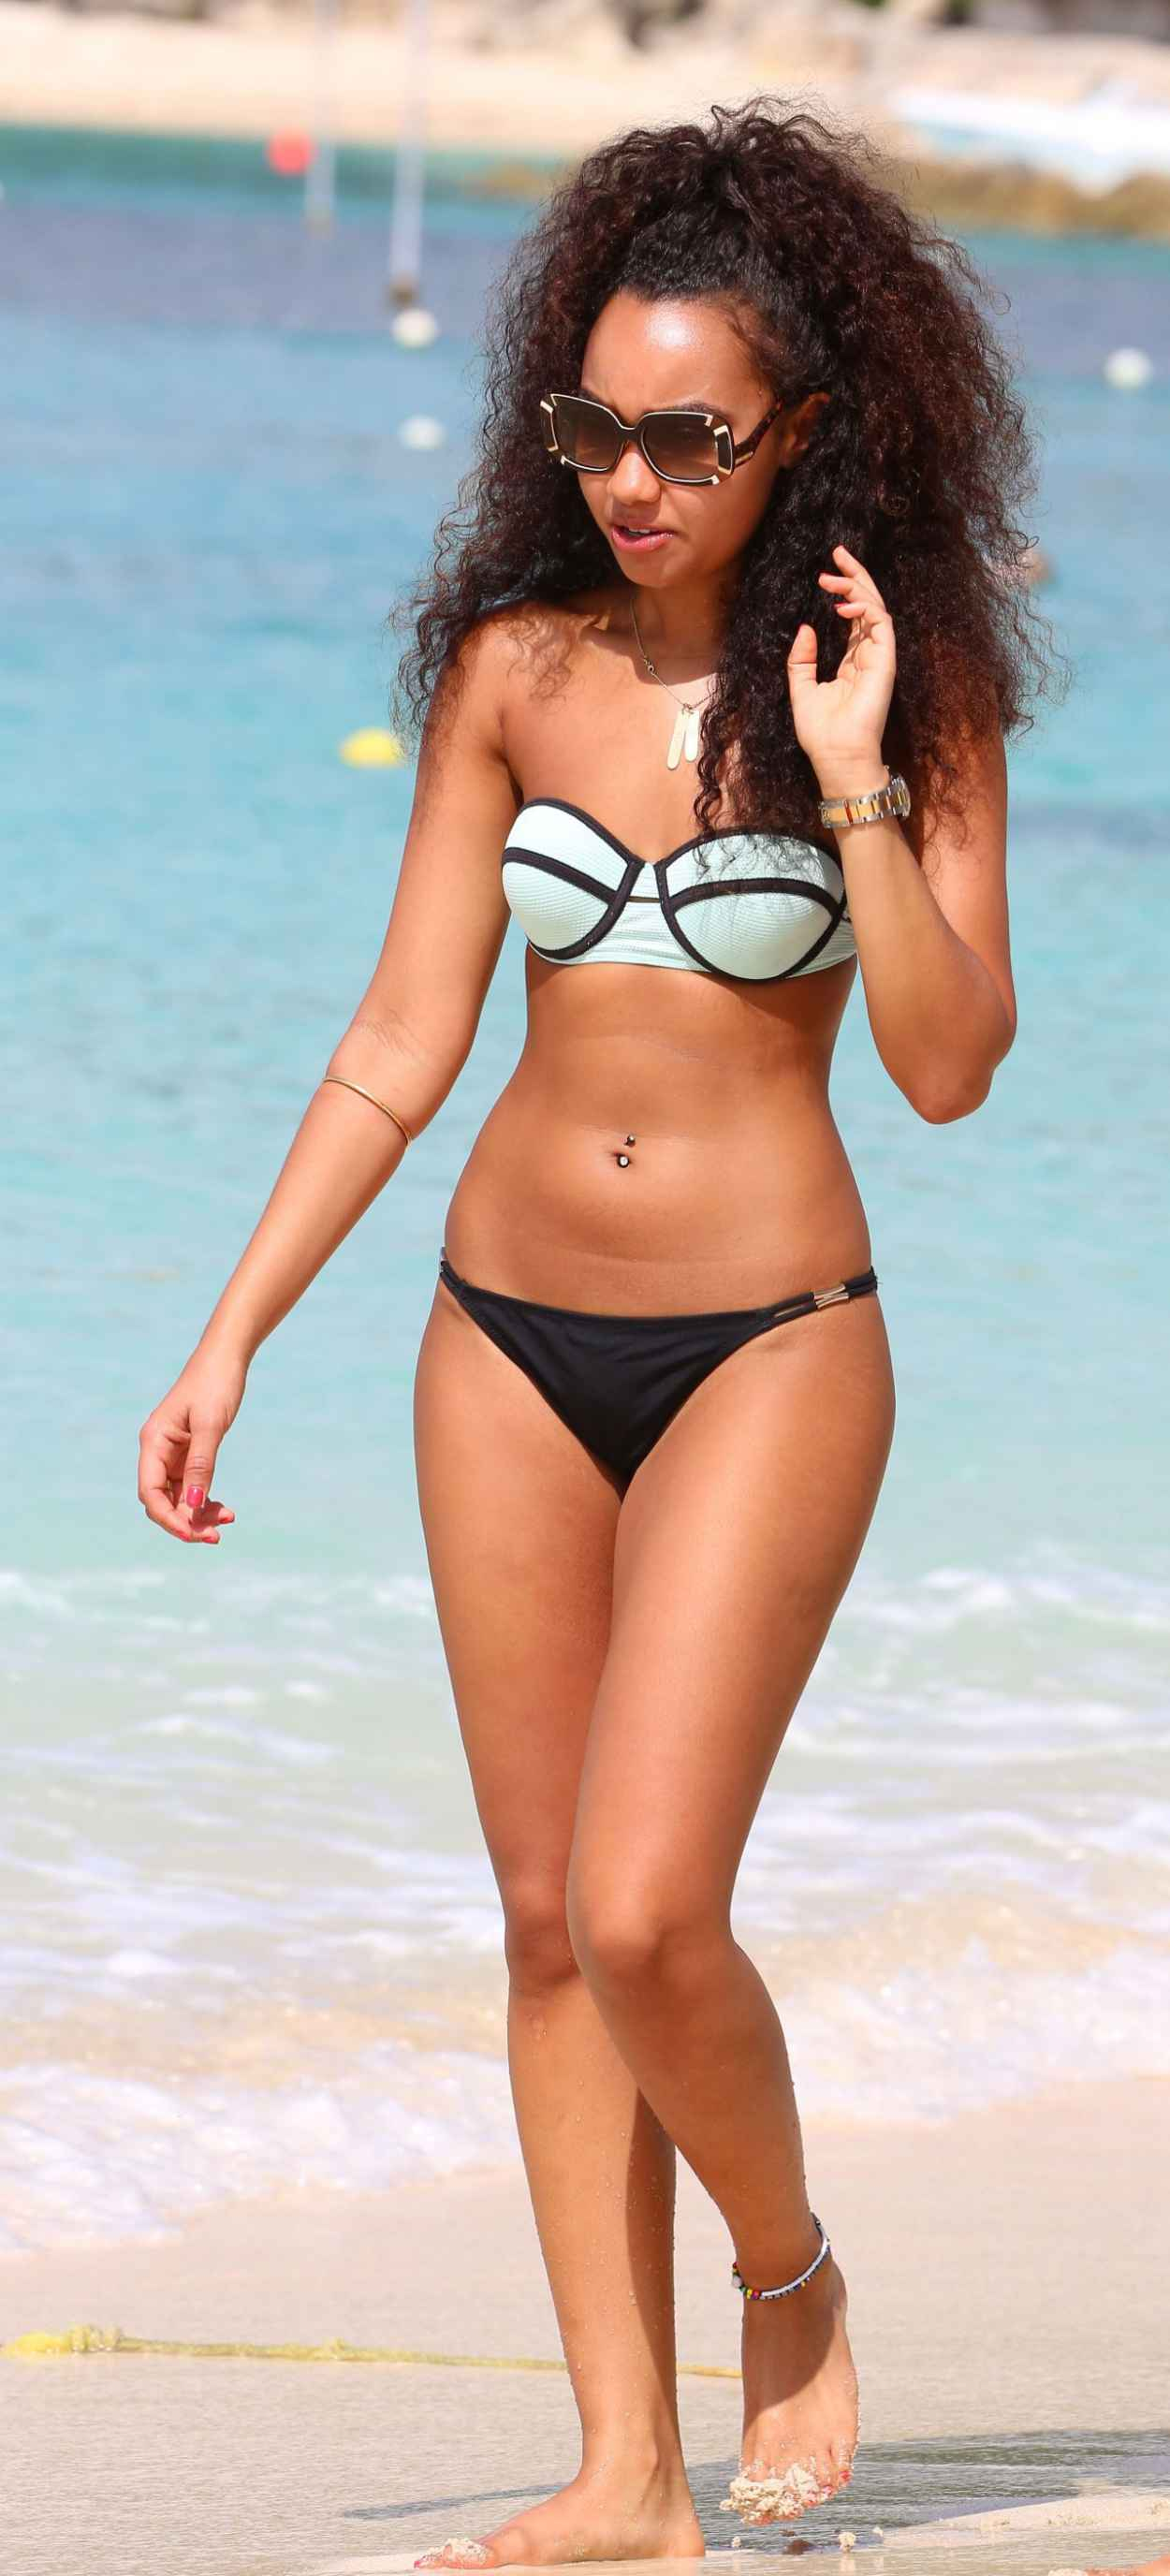 Leigh-Anne Pinnock Bikini Pictures From Barbados - December 2015-1